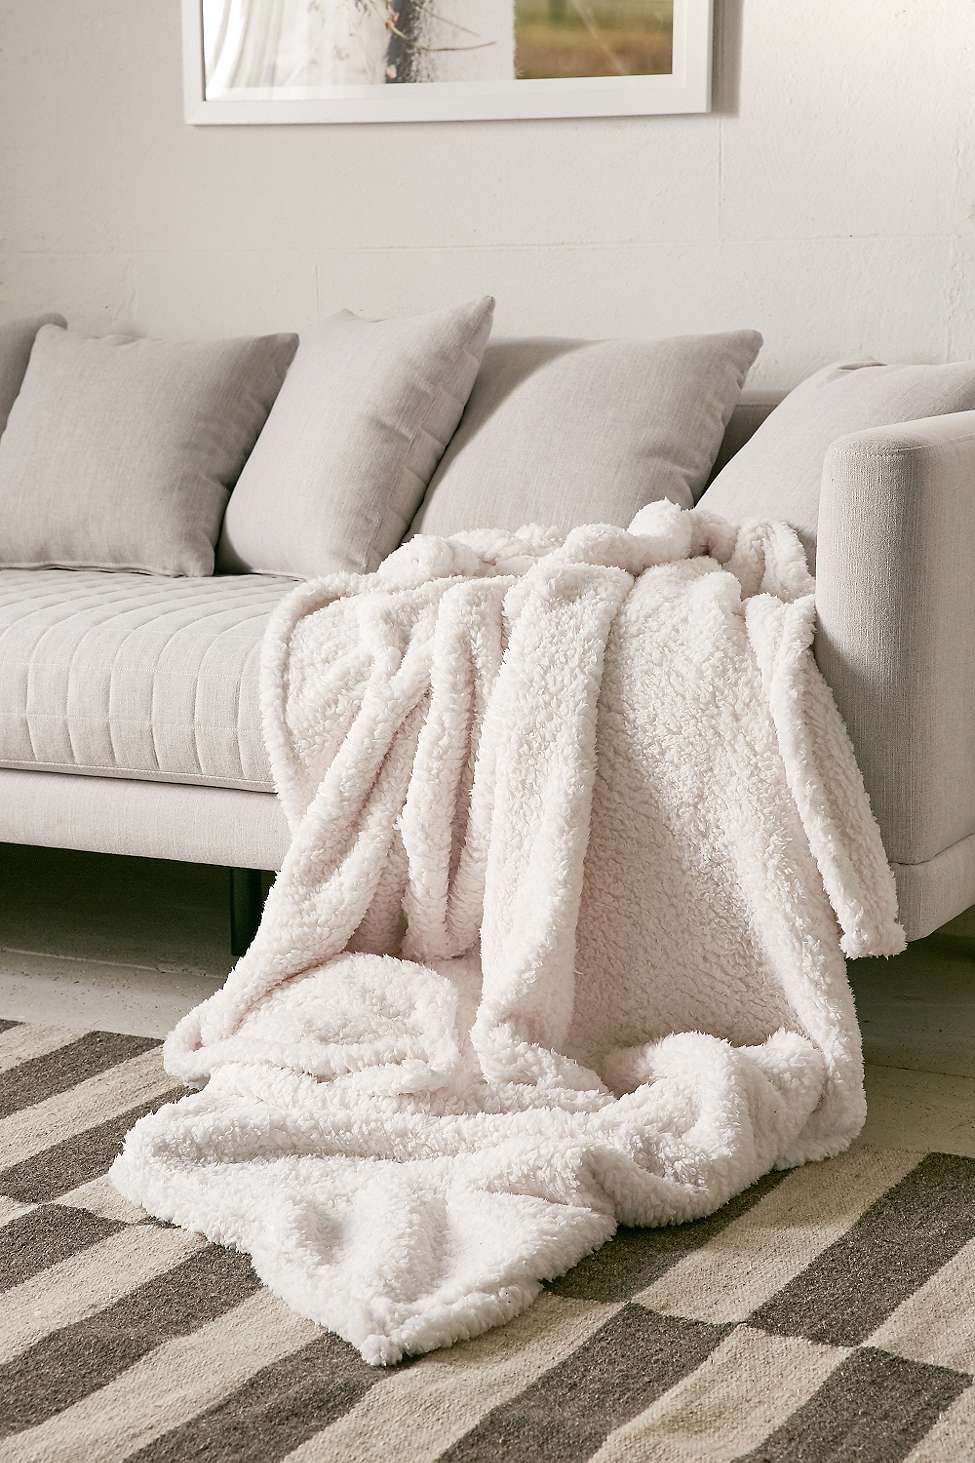 What Is A Throw Blanket Delectable Amped Fleece Throw Blanket Design Ideas